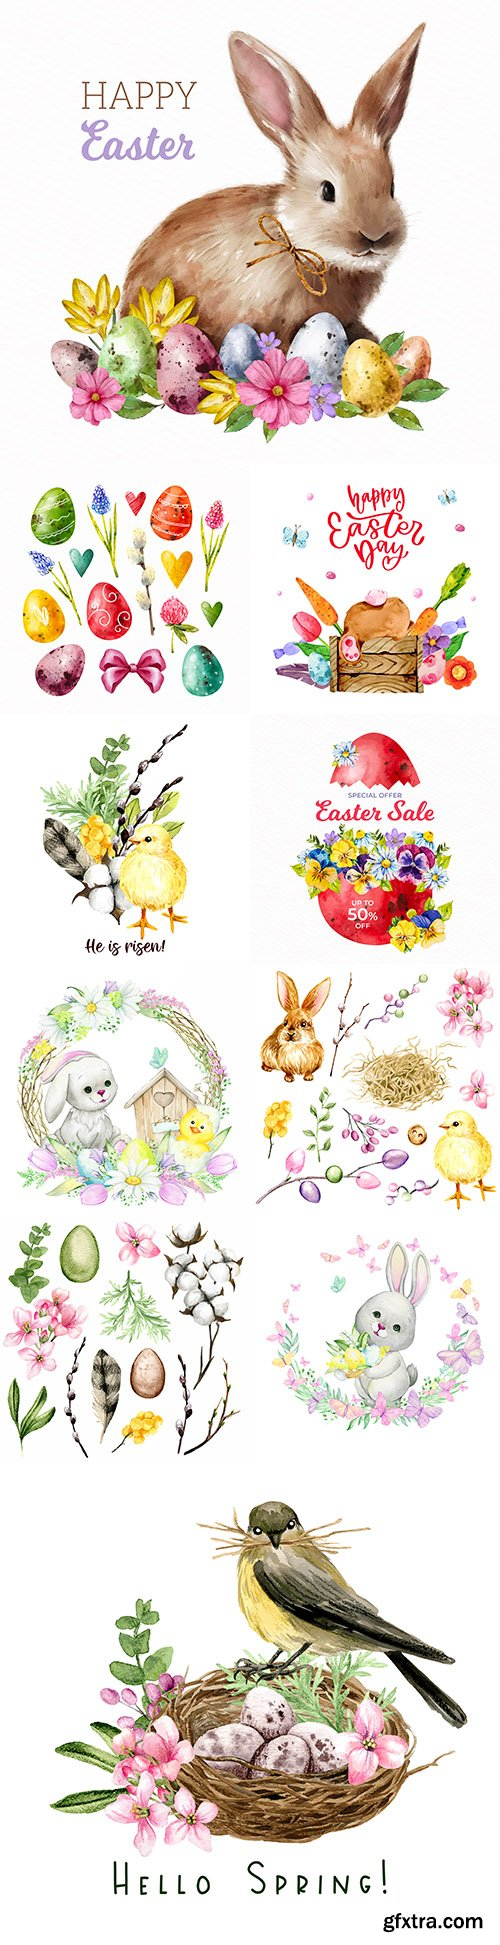 Happy Easter watercolor illustrations and elements for design